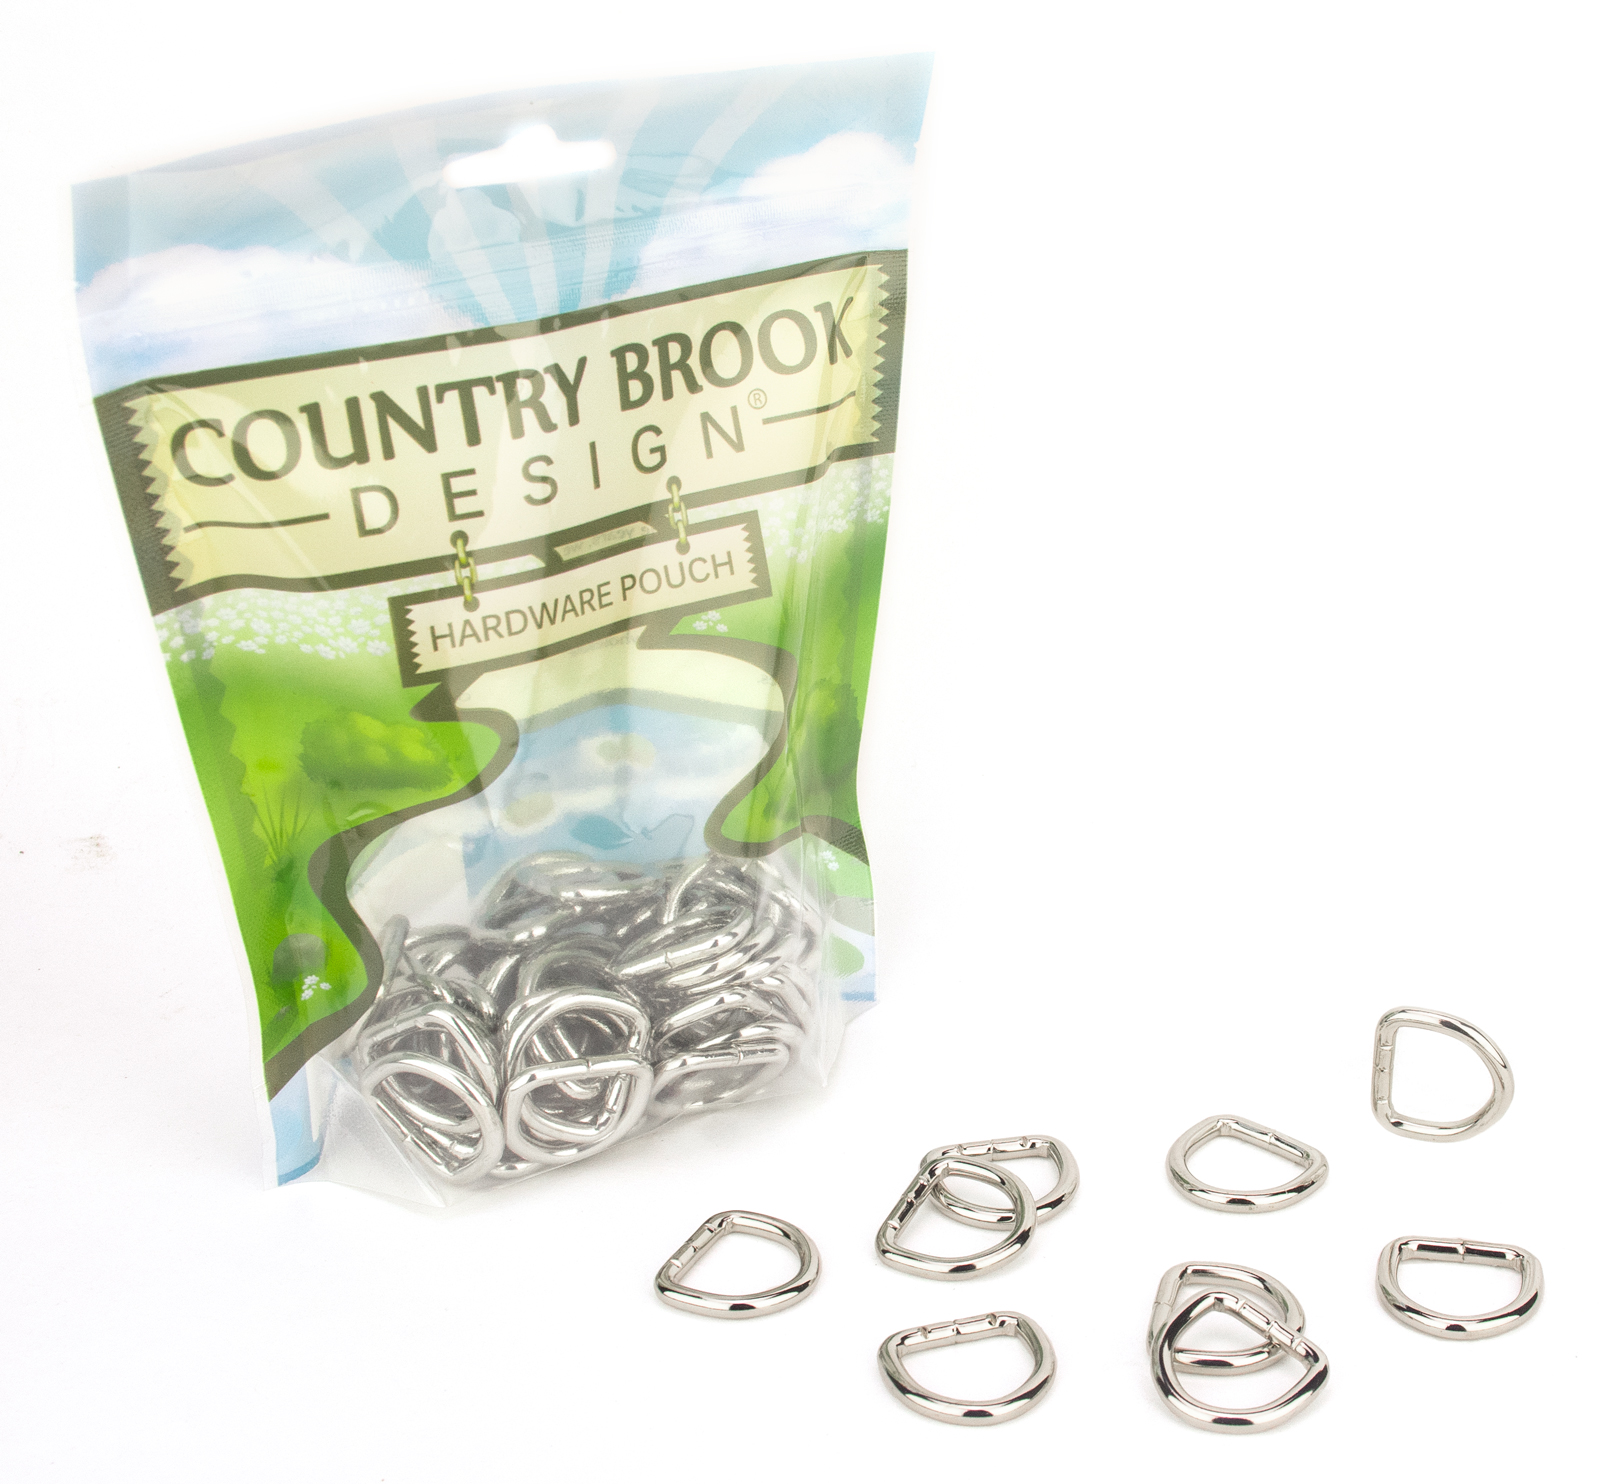 Country Brook Design® American Made 3/4 Inch Welded D-Rings